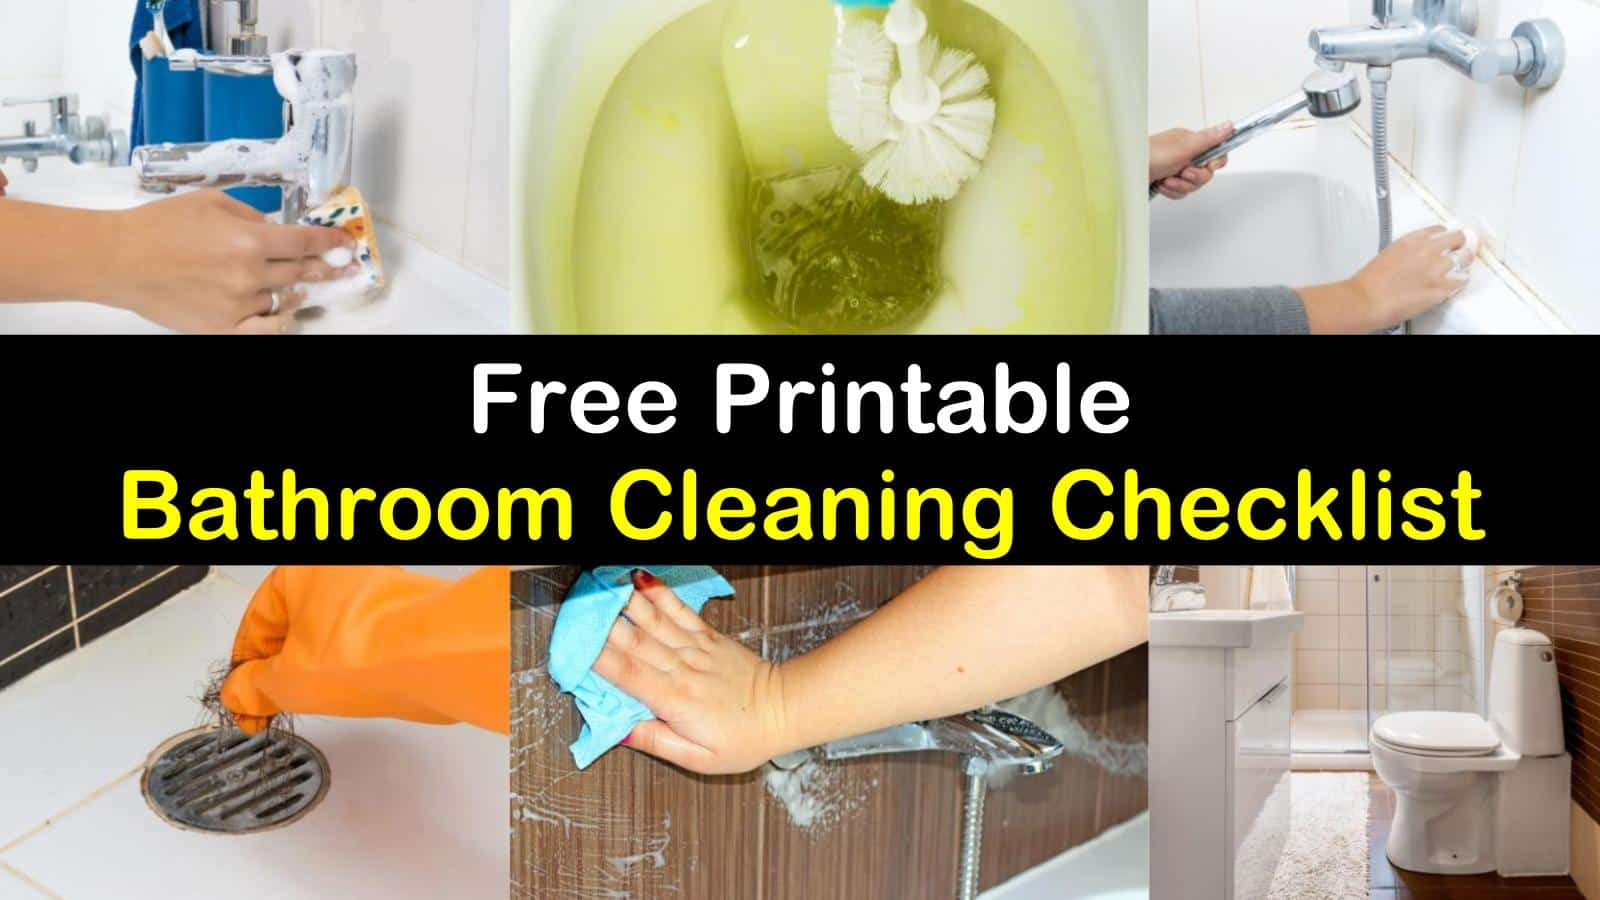 graphic relating to Printable Bathroom Cleaning Checklist known as Checklists - Totally free Printable Rest room Cleansing Record